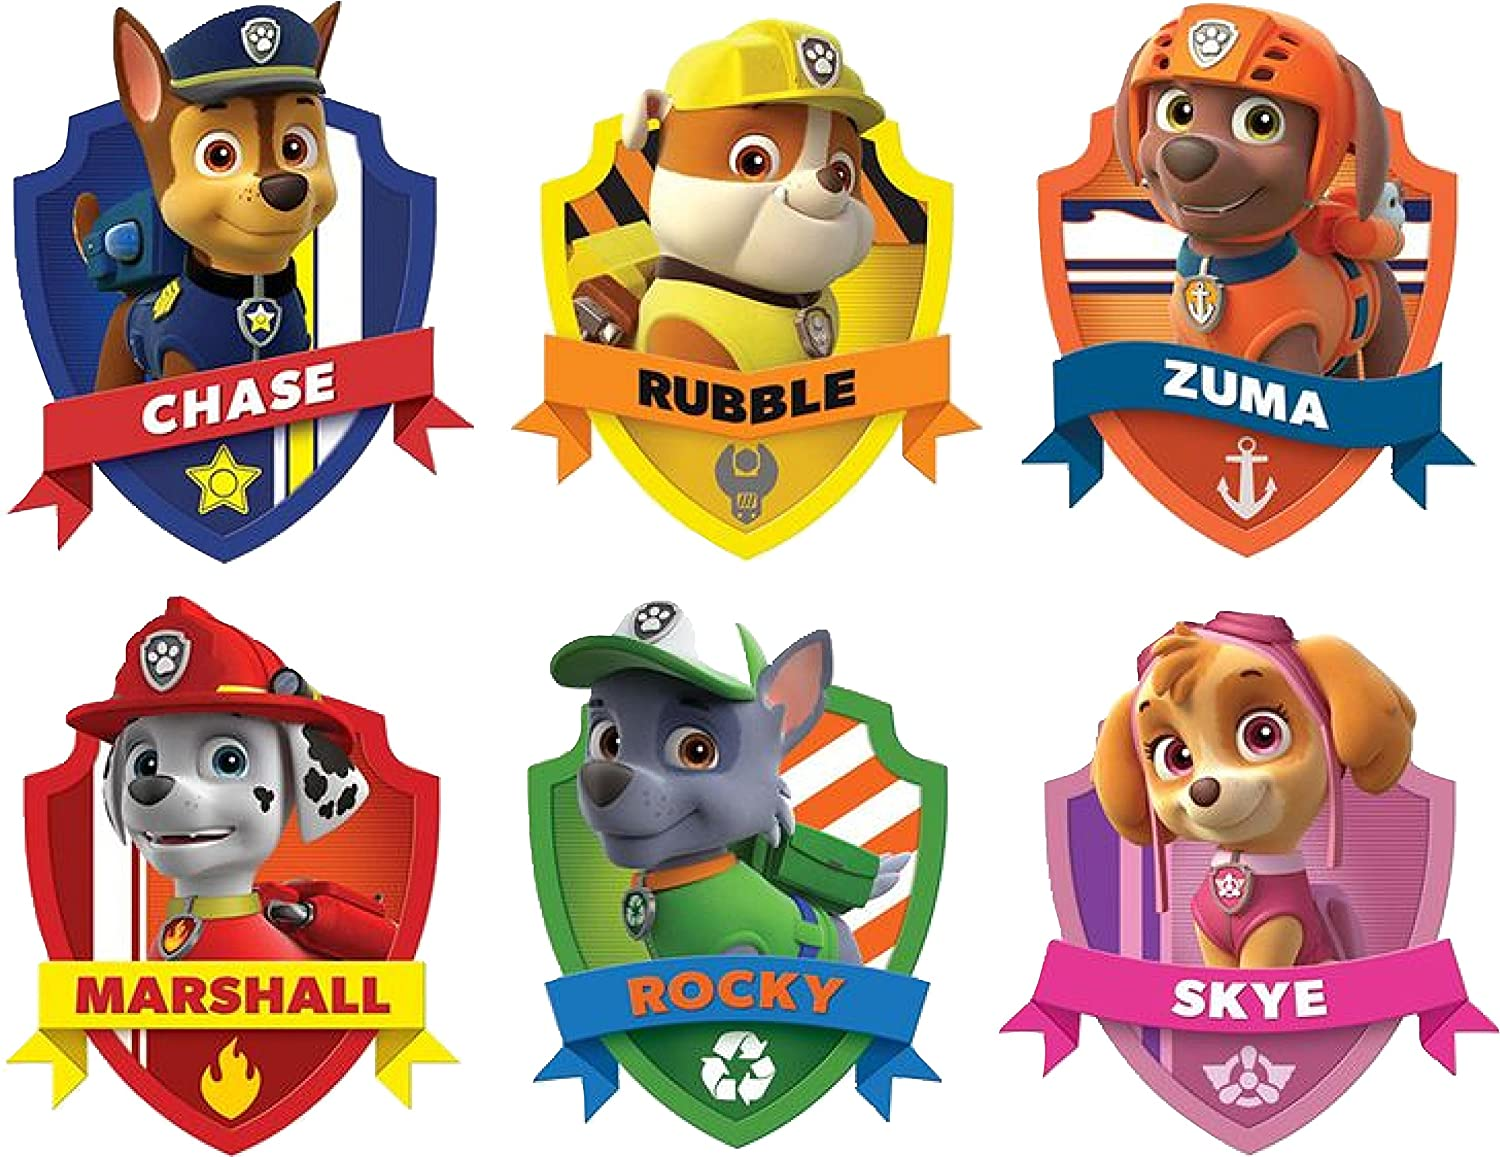 Paw patrol shield. D wall sticker set